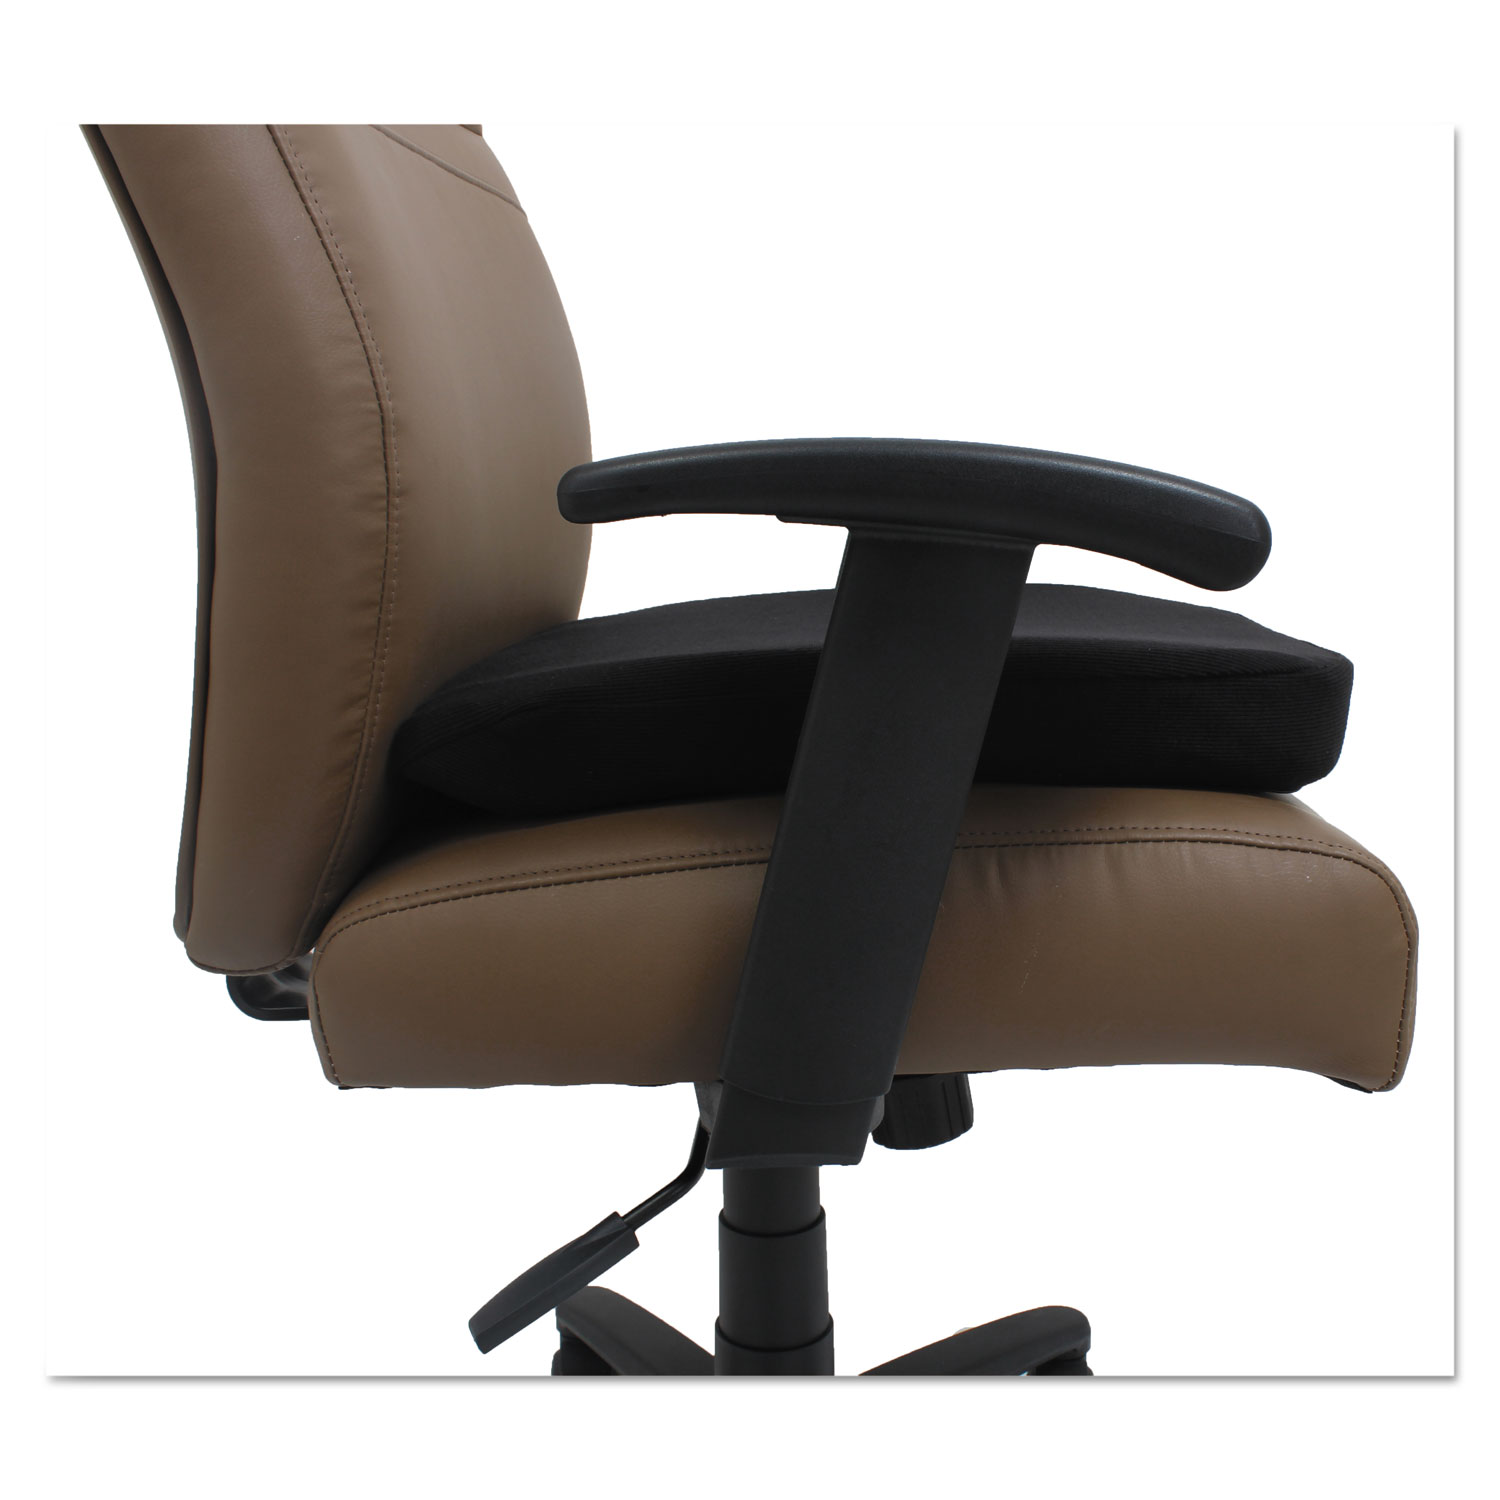 cooling office chair. Cooled Office Chair. Cooling Alecgc511 Thumbnail 1 · 2 Chair R